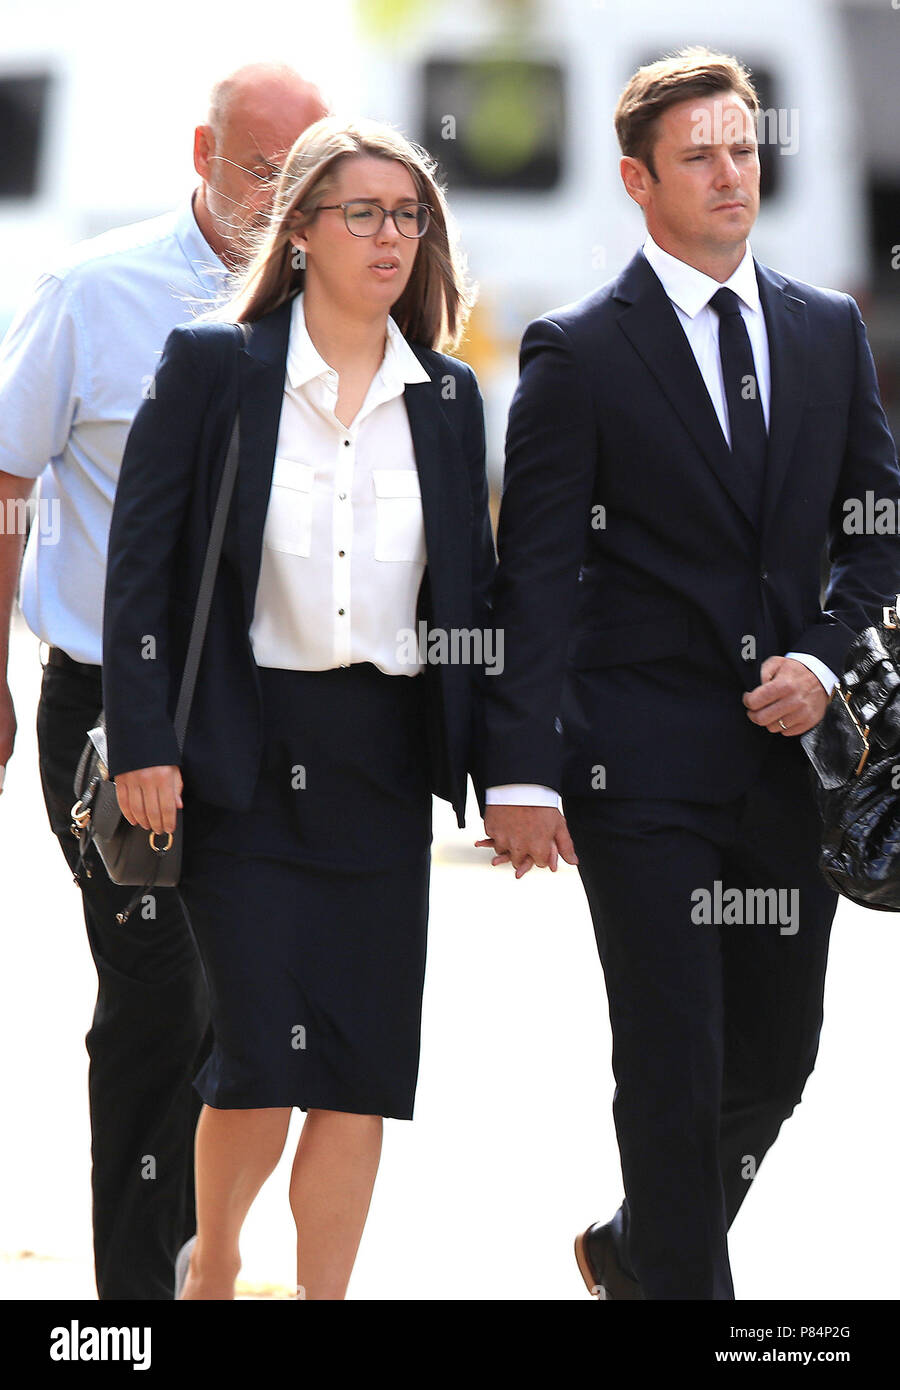 Liam Rosney 32 And Victoria Rosney 31 Arrive At Mold Crown Court In Mold Where They Are Charged In Connection With Death Of Olympic Cyclist Chris Boardman S Mother Carol Who Died After